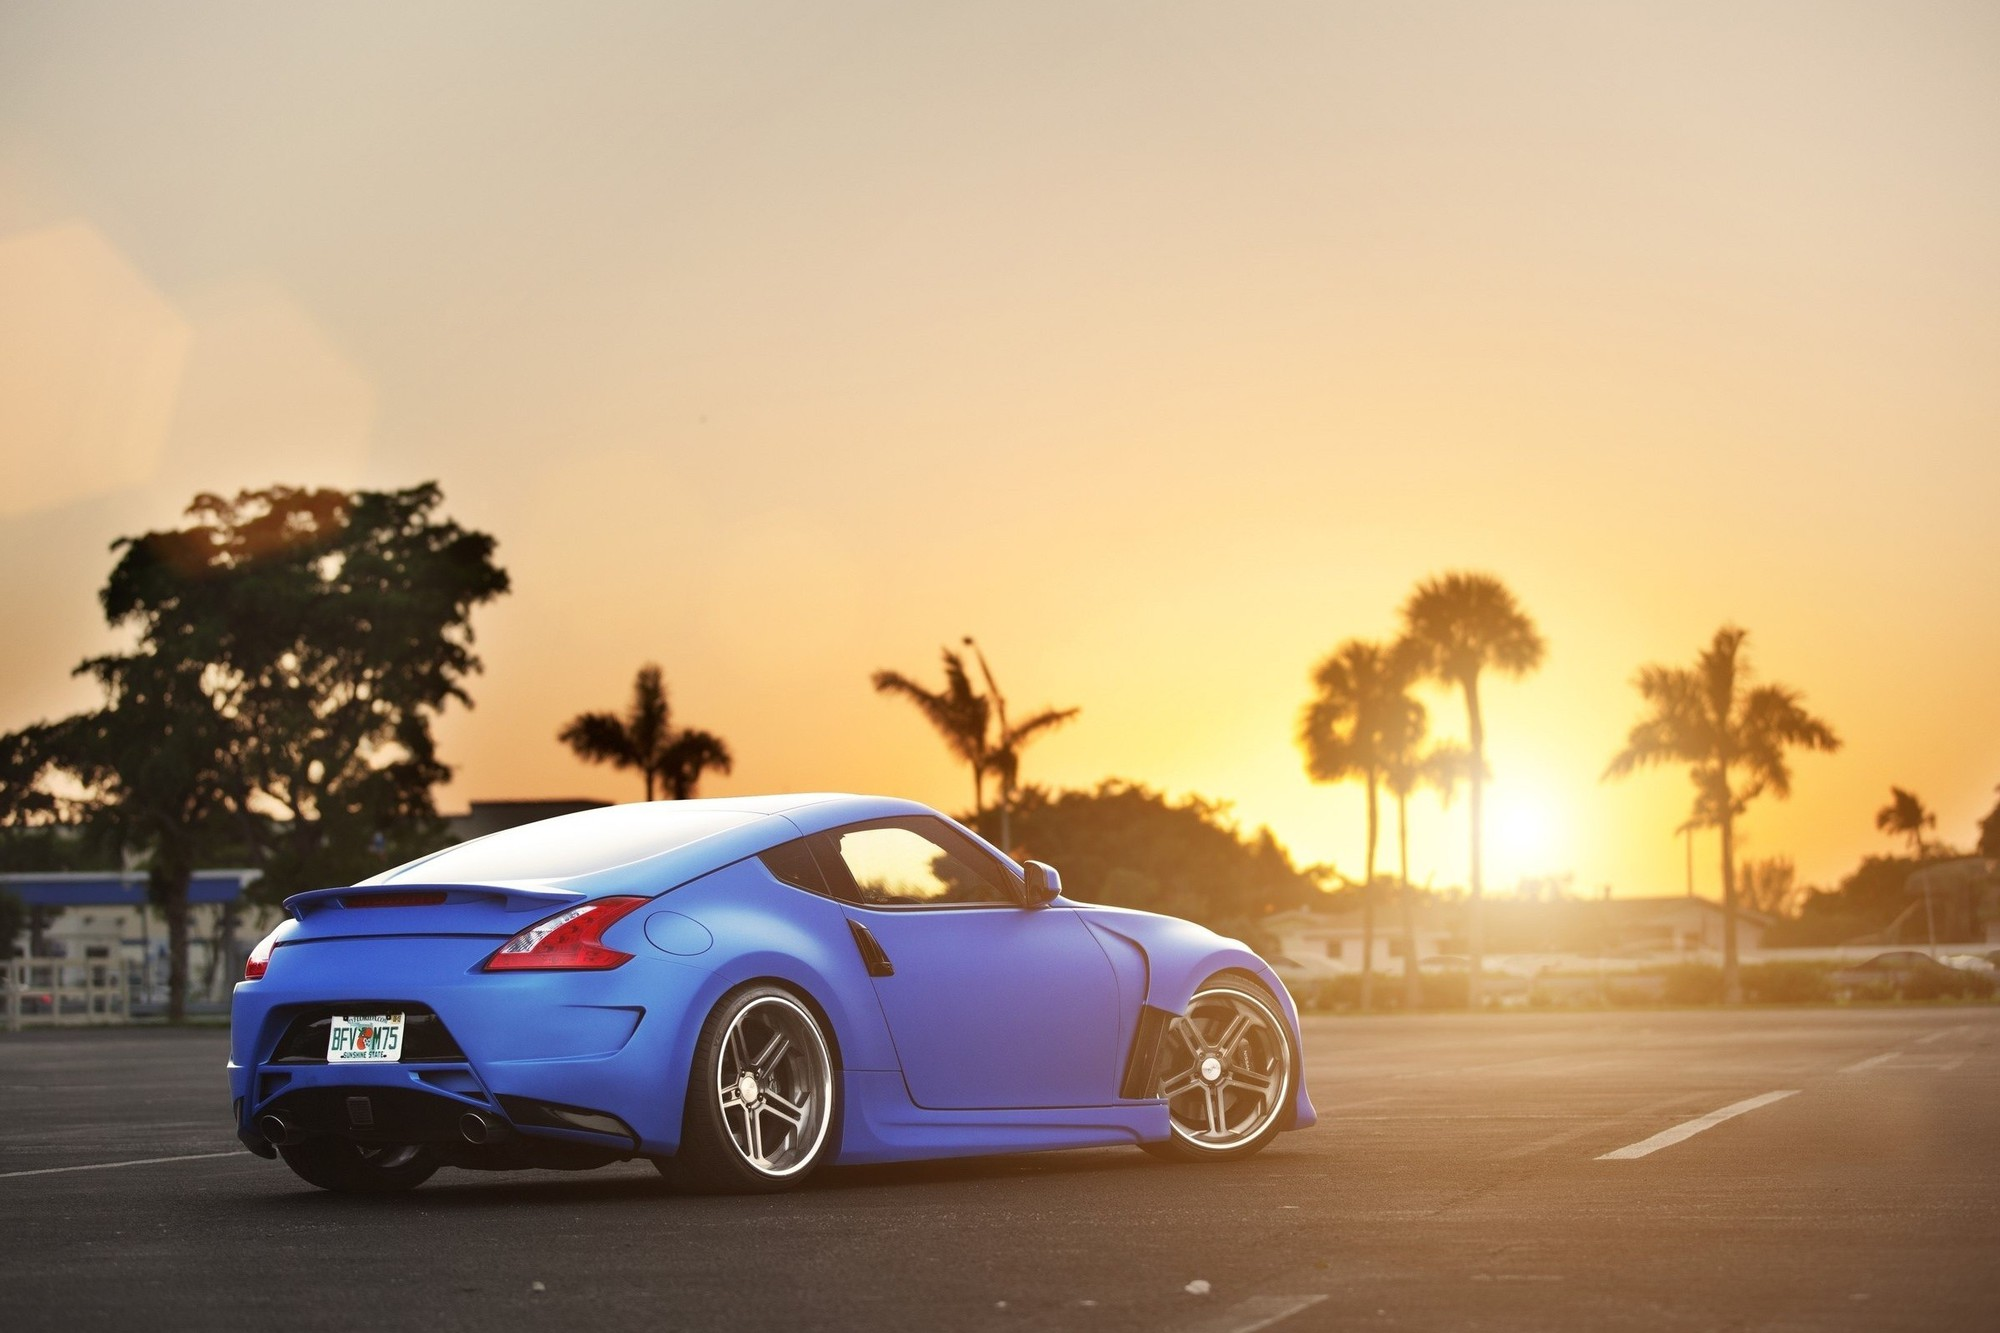 Sunset Blue Nissan 370z Wallpaper Allwallpaper In 16490